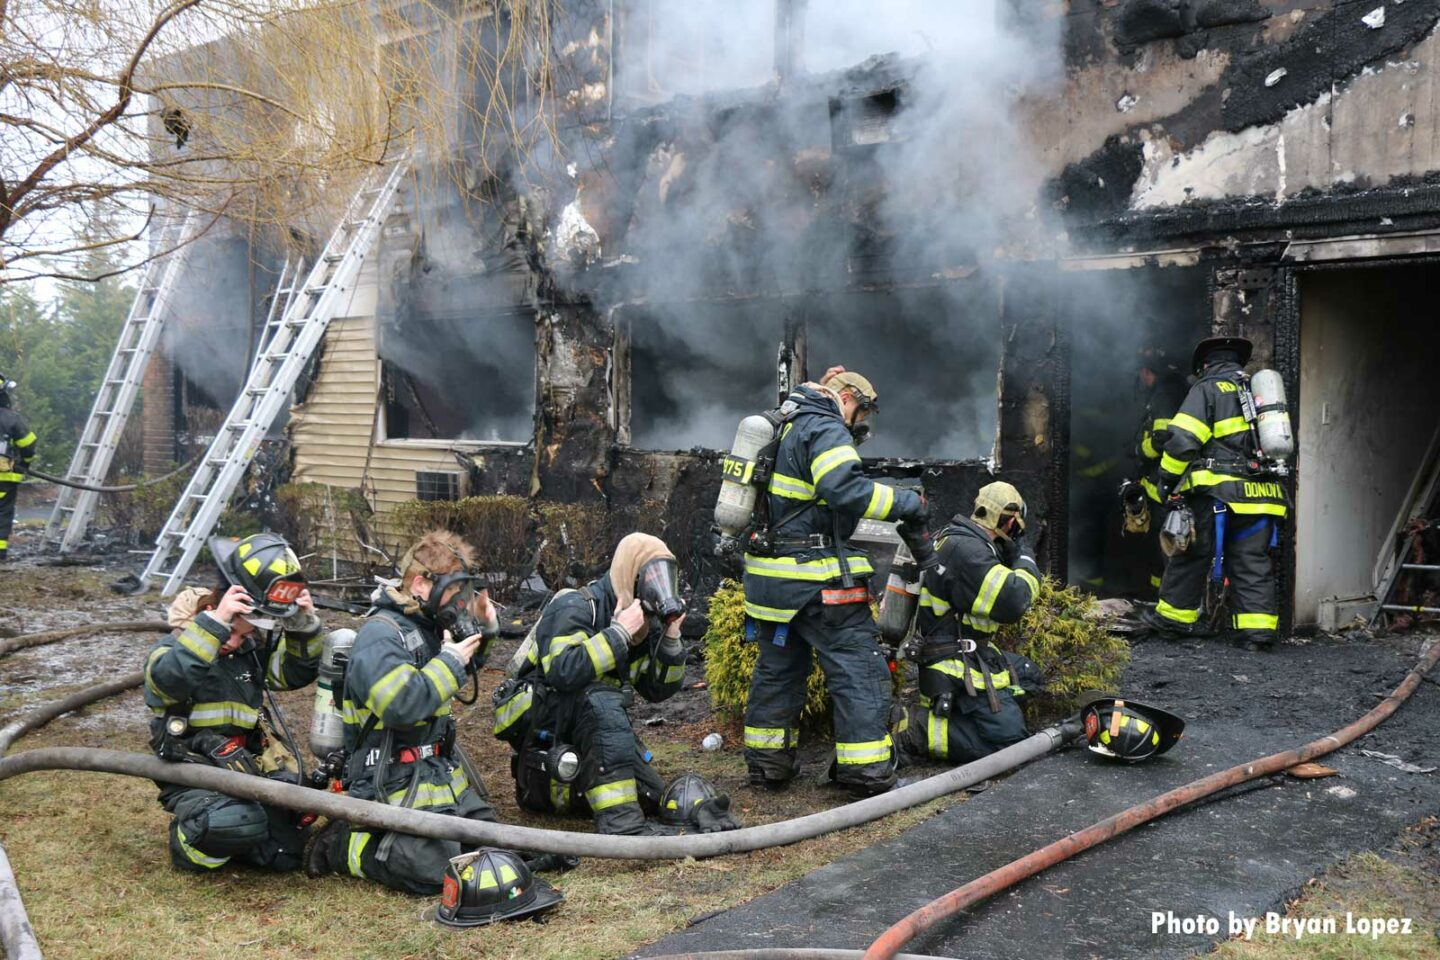 Firefighters at the scene of the Long Island house fire